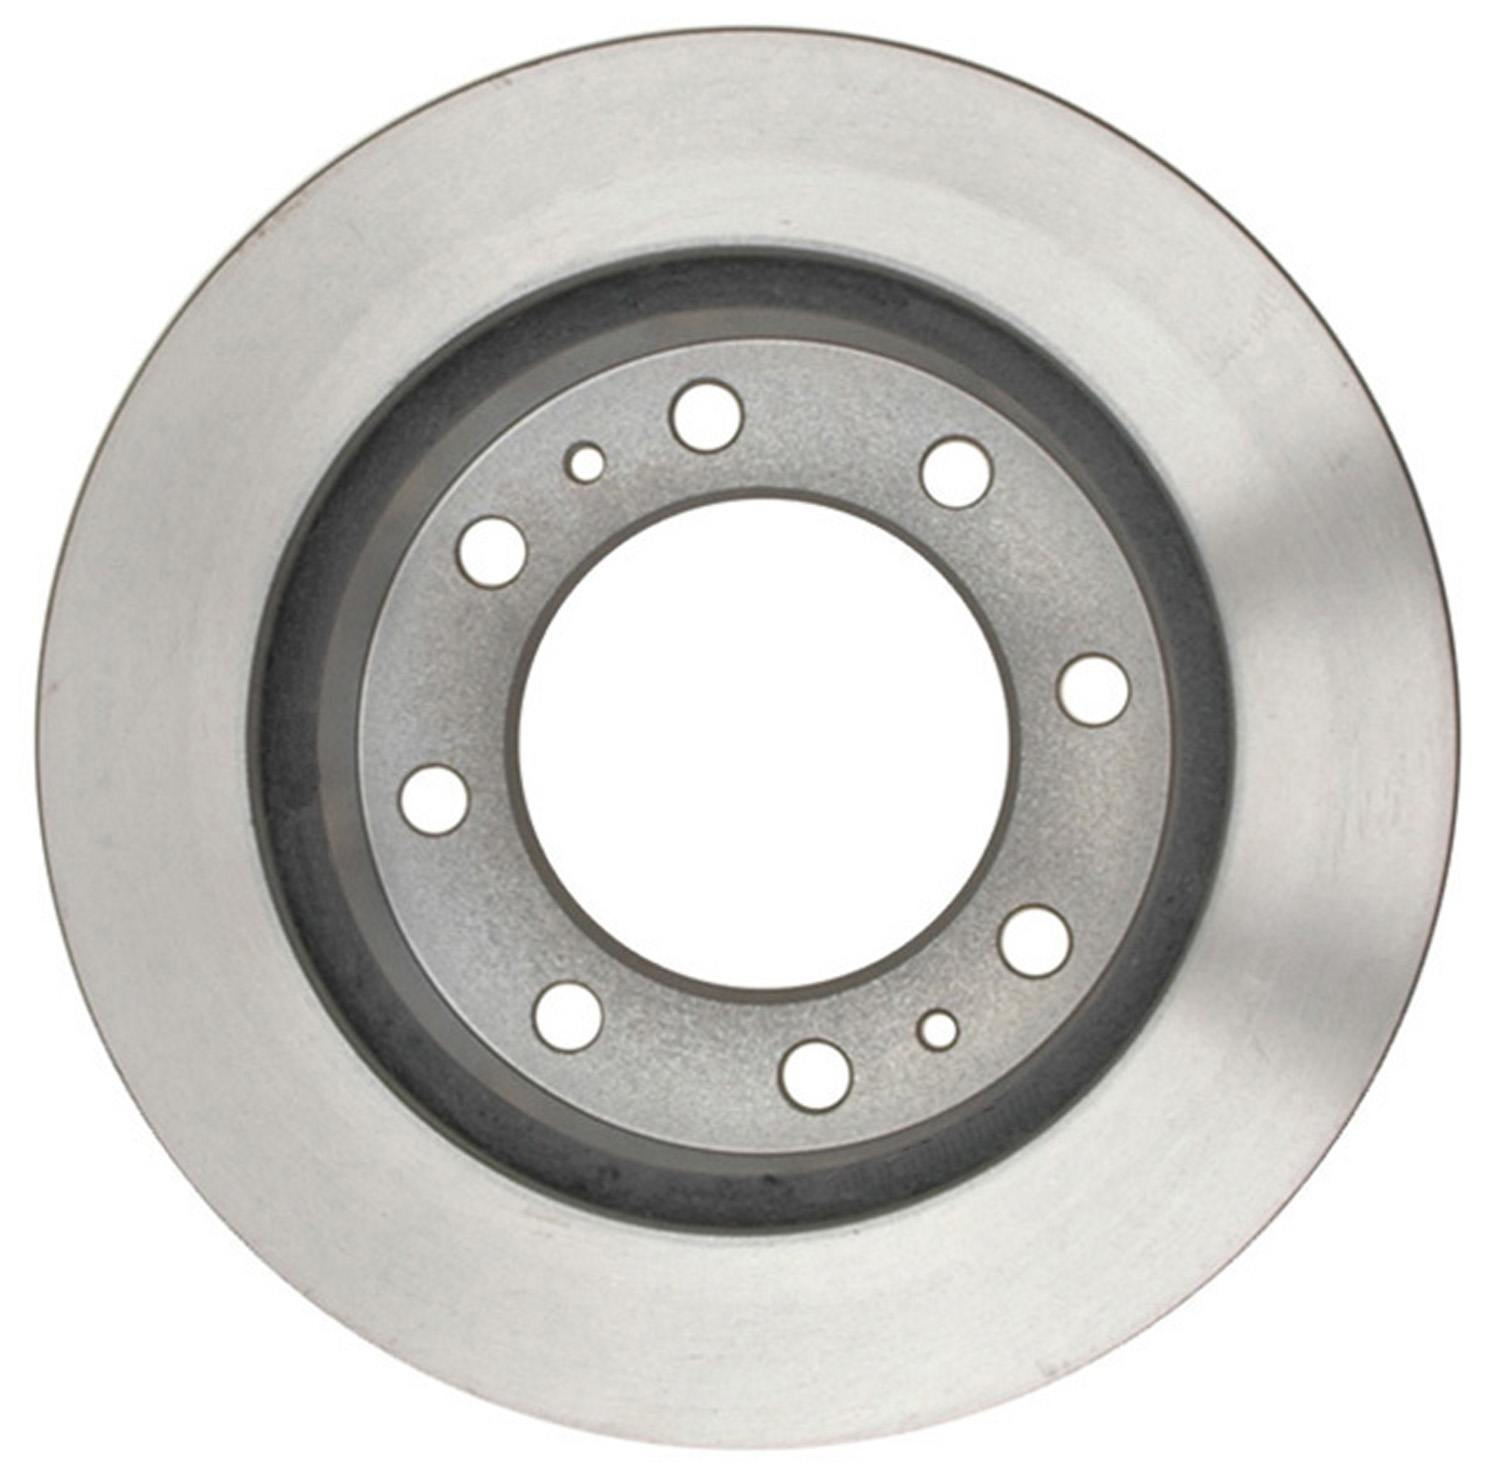 ACDELCO PROFESSIONAL BRAKES - Disc Brake Rotor - ADU 18A1206